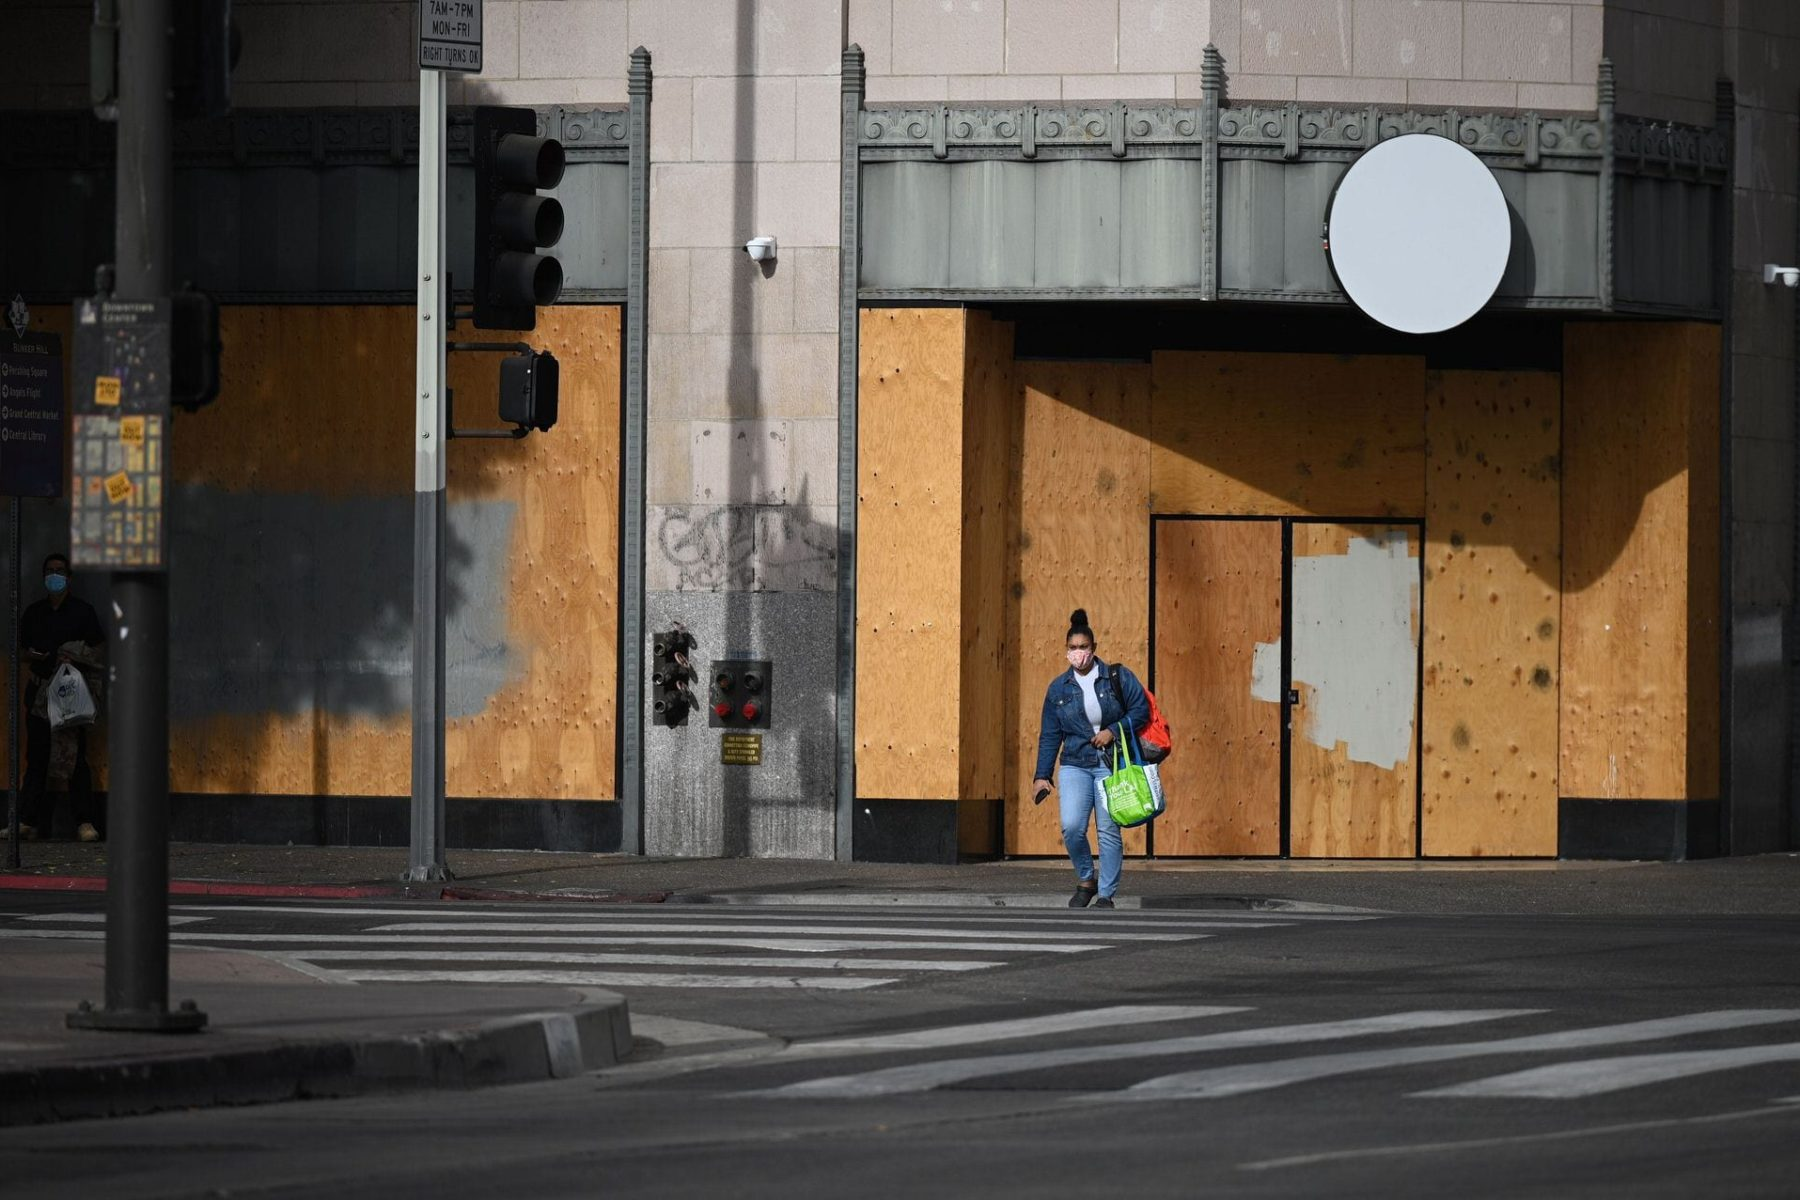 A woman wearing a facemask to prevent the spread of coronavirus walks past a boarded up storefront at the intersection of Hill Street and 5th Street in downtown Los Angeles, California, November 5, 2020 as the country awaits the result of the November 3 US presidential election. - Businesses in major US cities were boarded up in anticipation of unrest. The nail-biting US election was on the cusp of finally producing a winner Thursday, with Democrat Joe Biden declaring